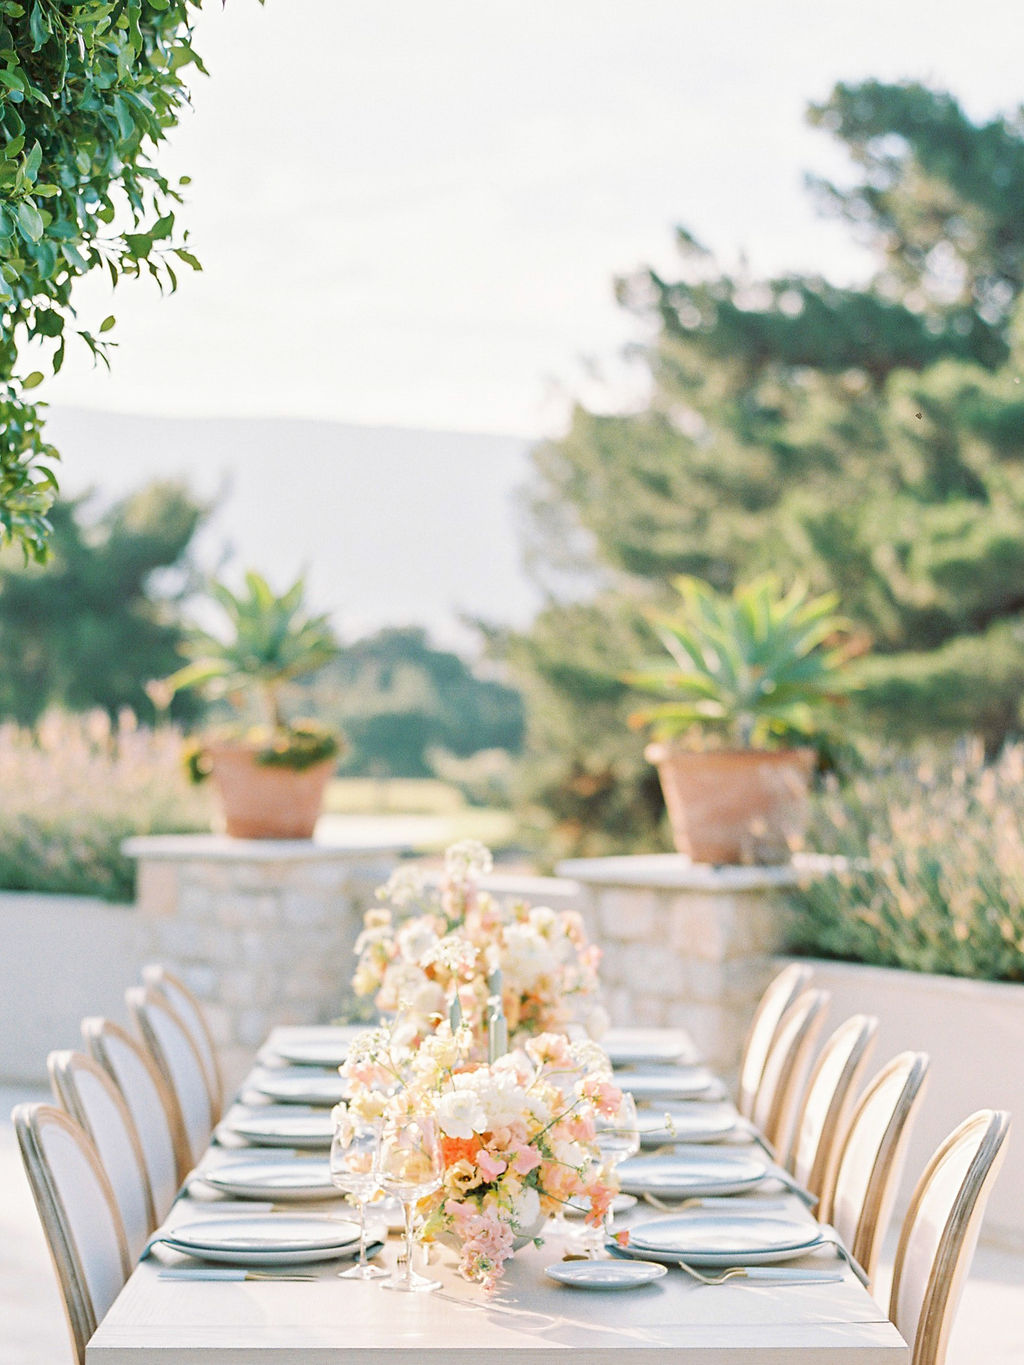 Wedding In Greece At Golf Prive. - Table Setting